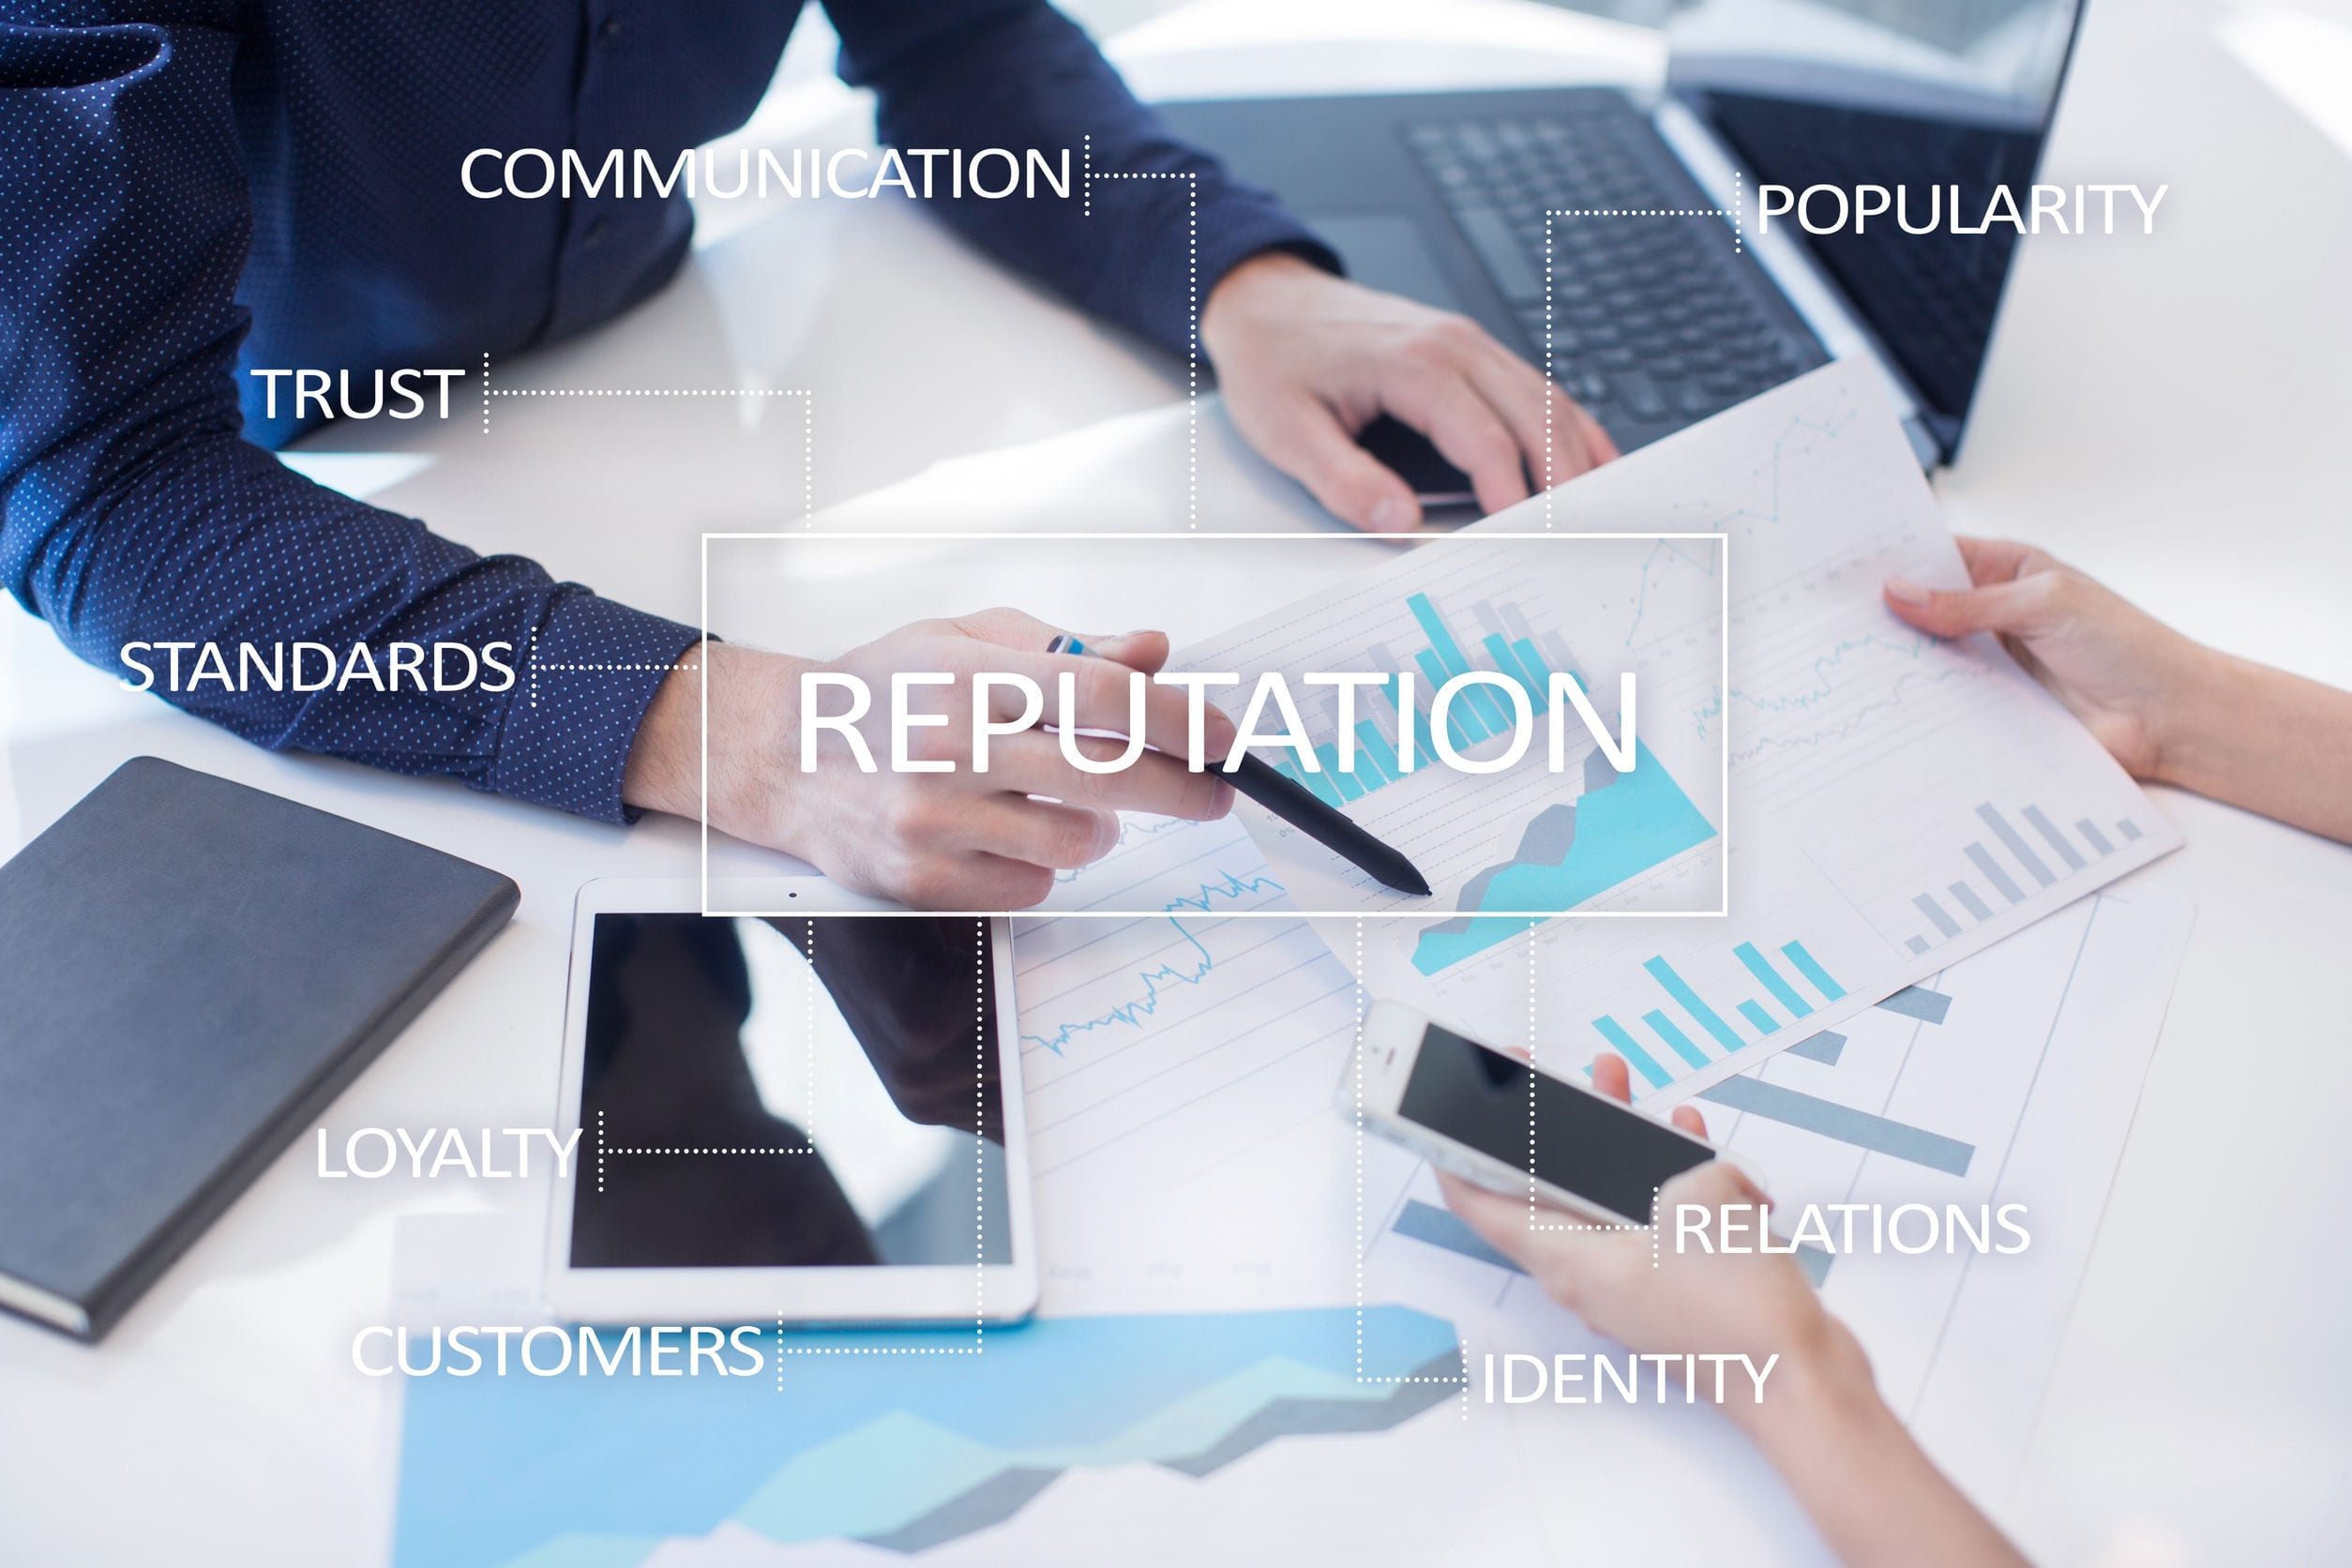 Reputation and customer relationship business concept